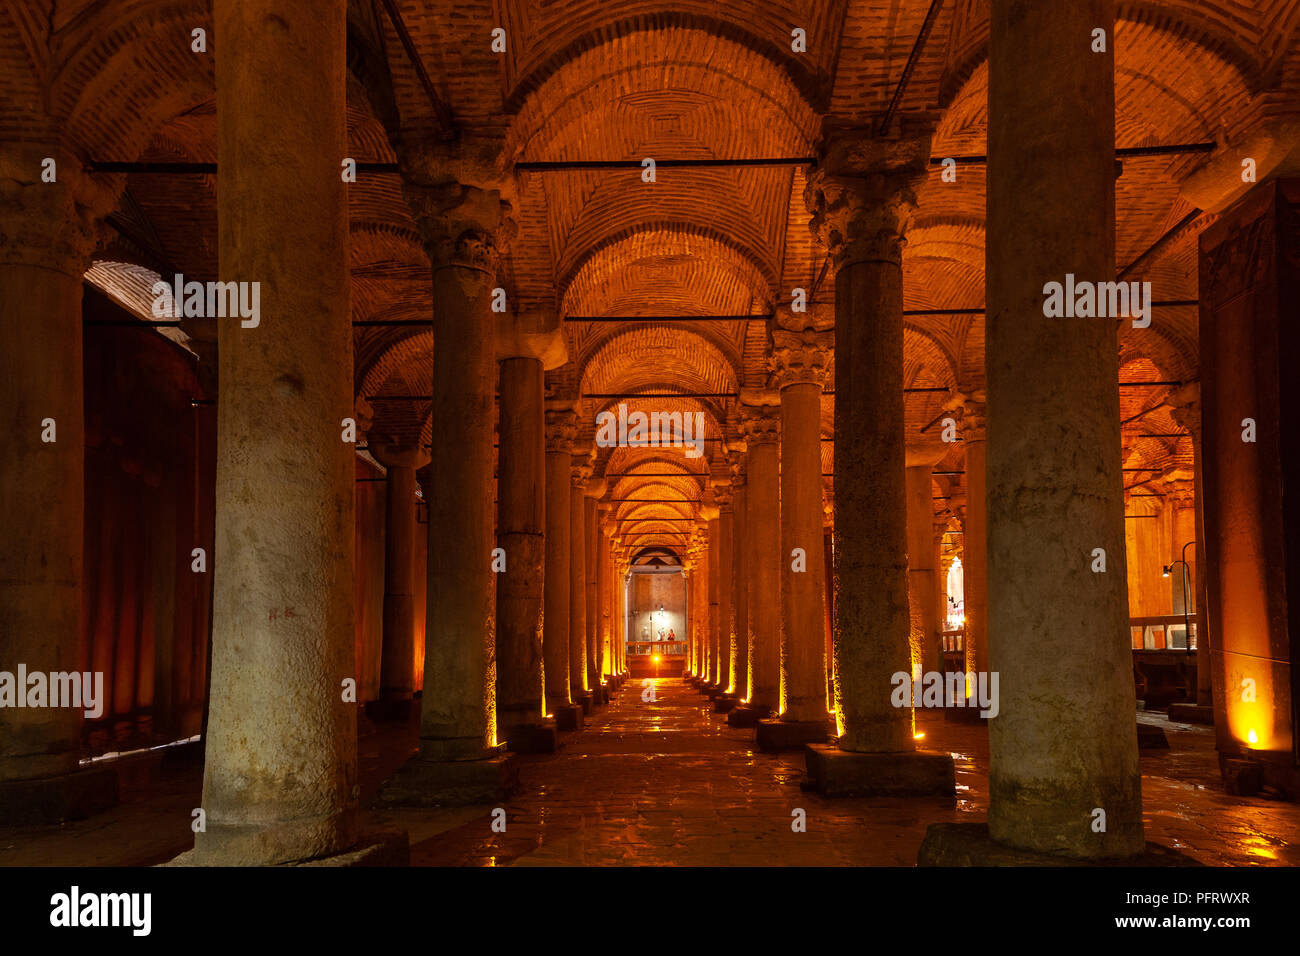 Istanbul, Turkey - August 21, 2018: Illuminated columns of the Basilica Cistern on  August 21, 2018 in Istanbul, Turkey. - Stock Image